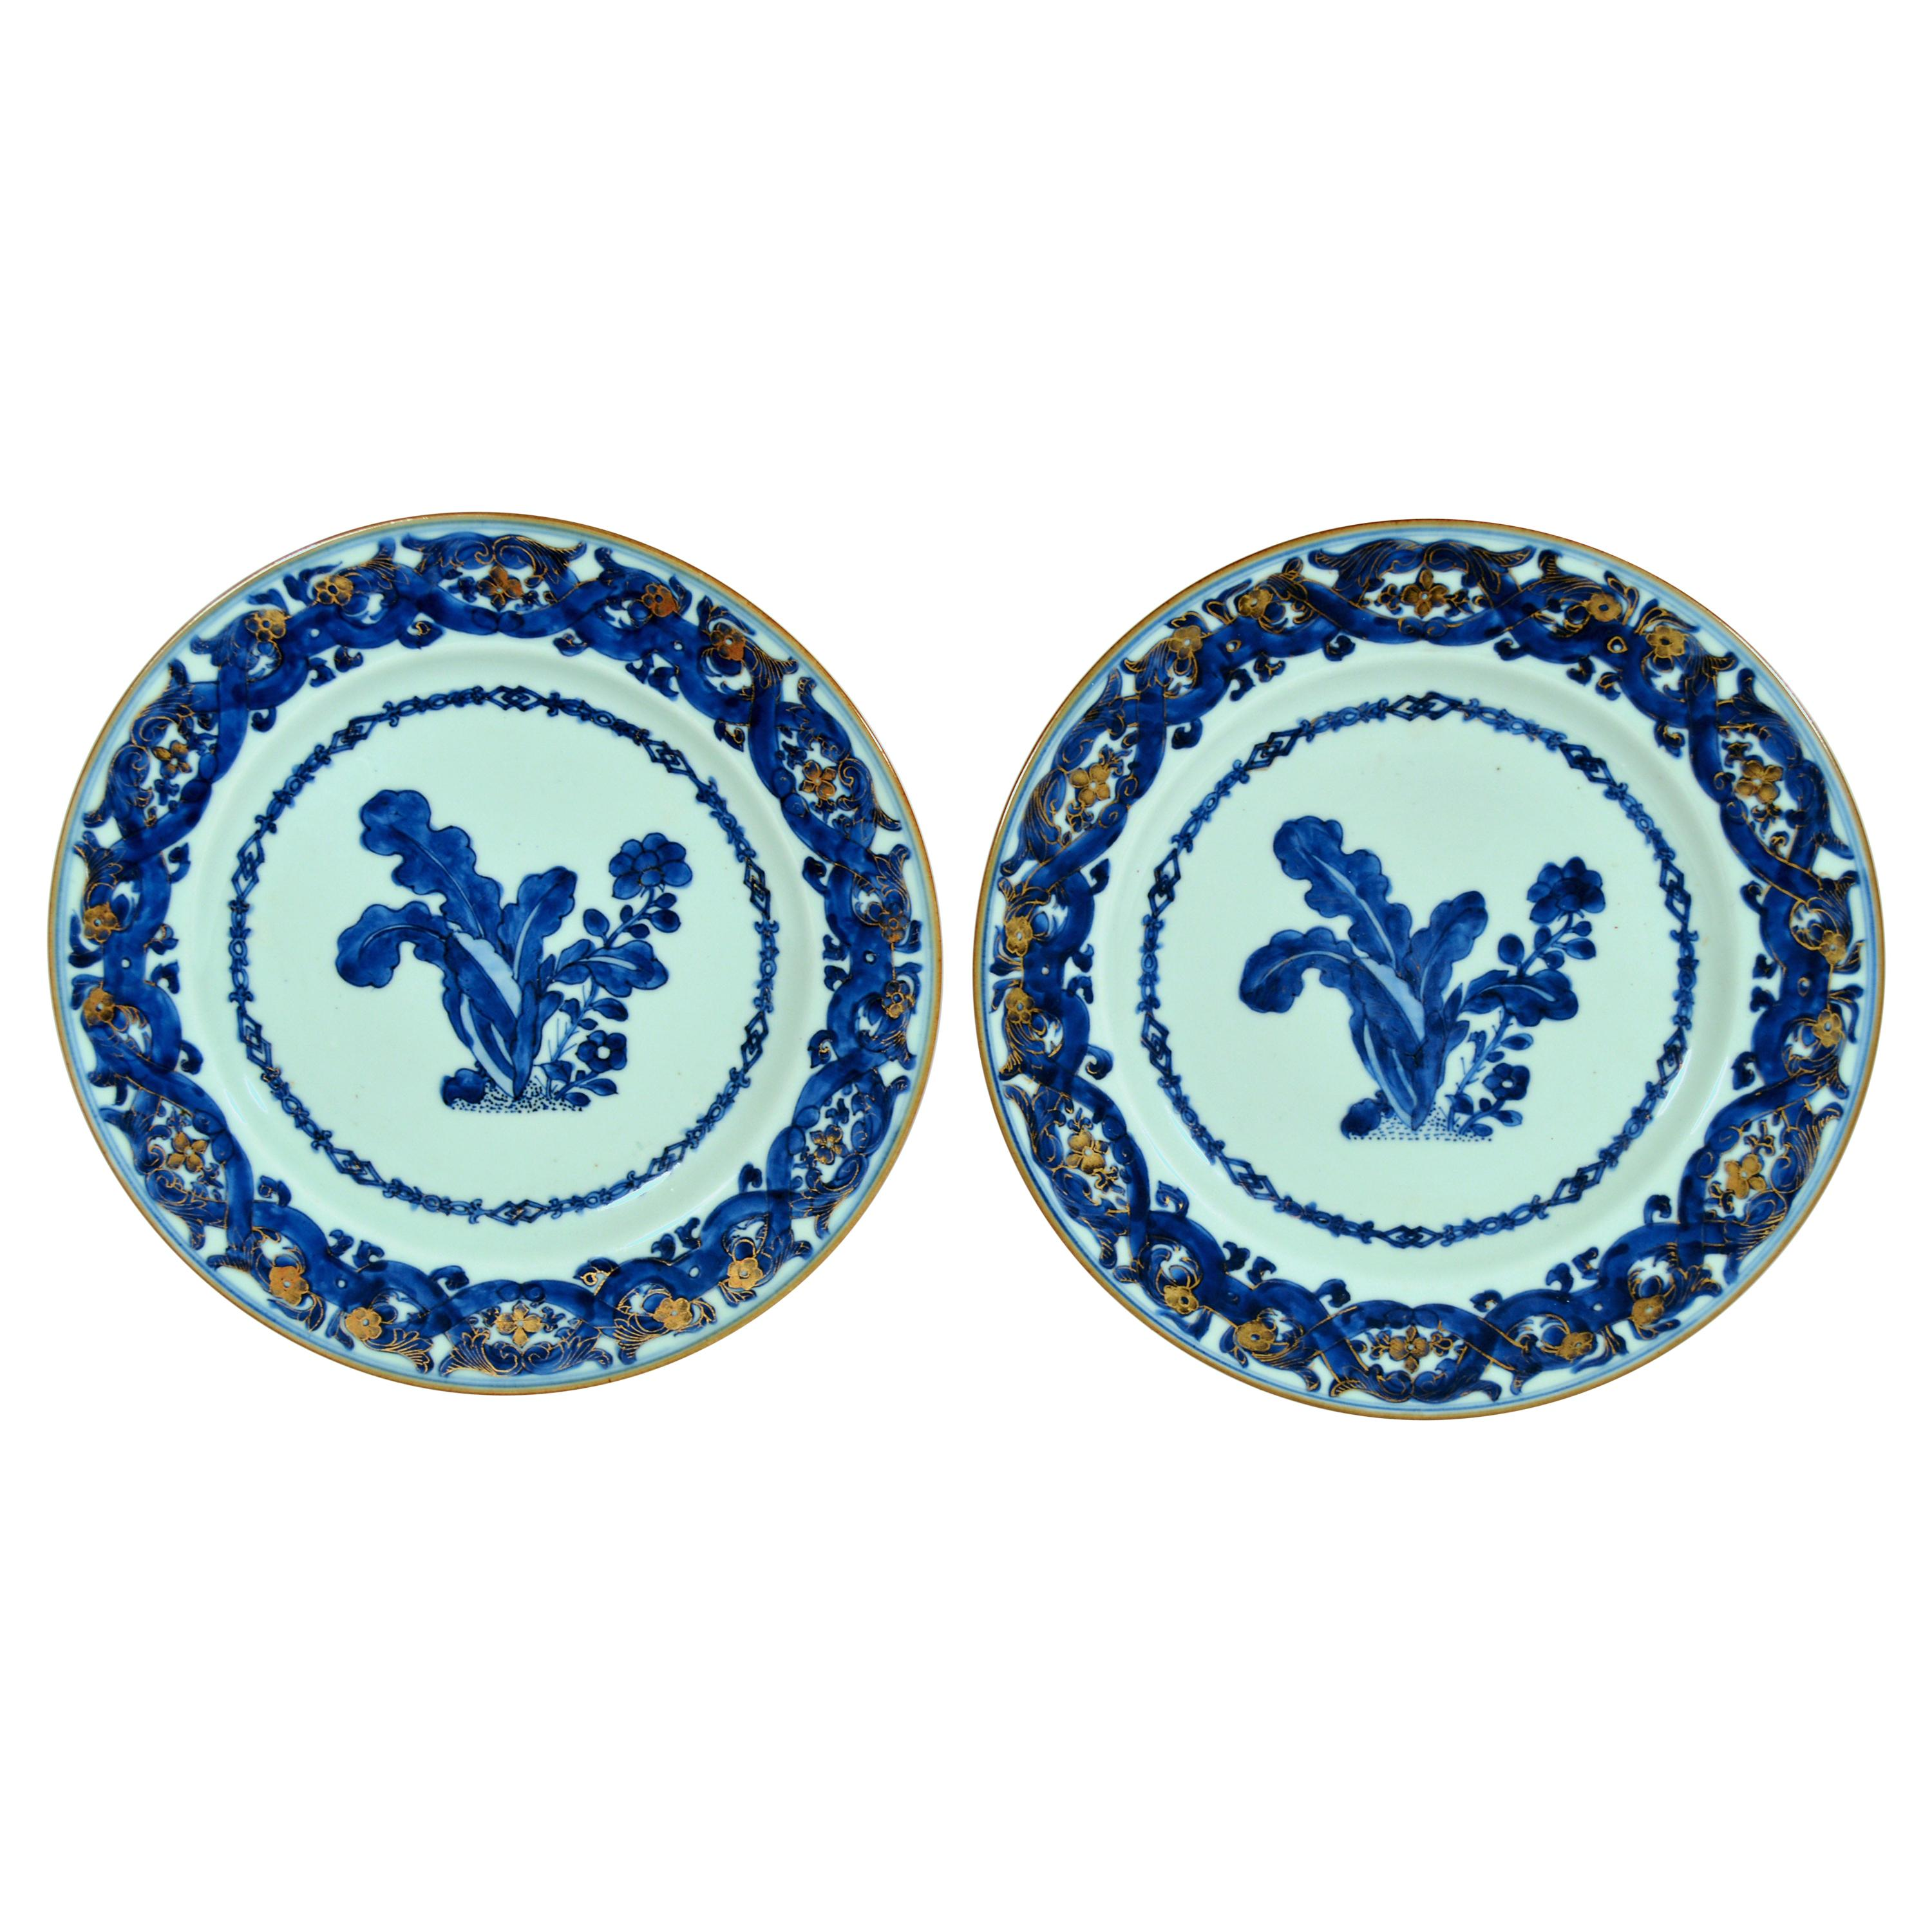 Chinese Export Porcelain Blue and White Porcelain After Maria Sybille Merian